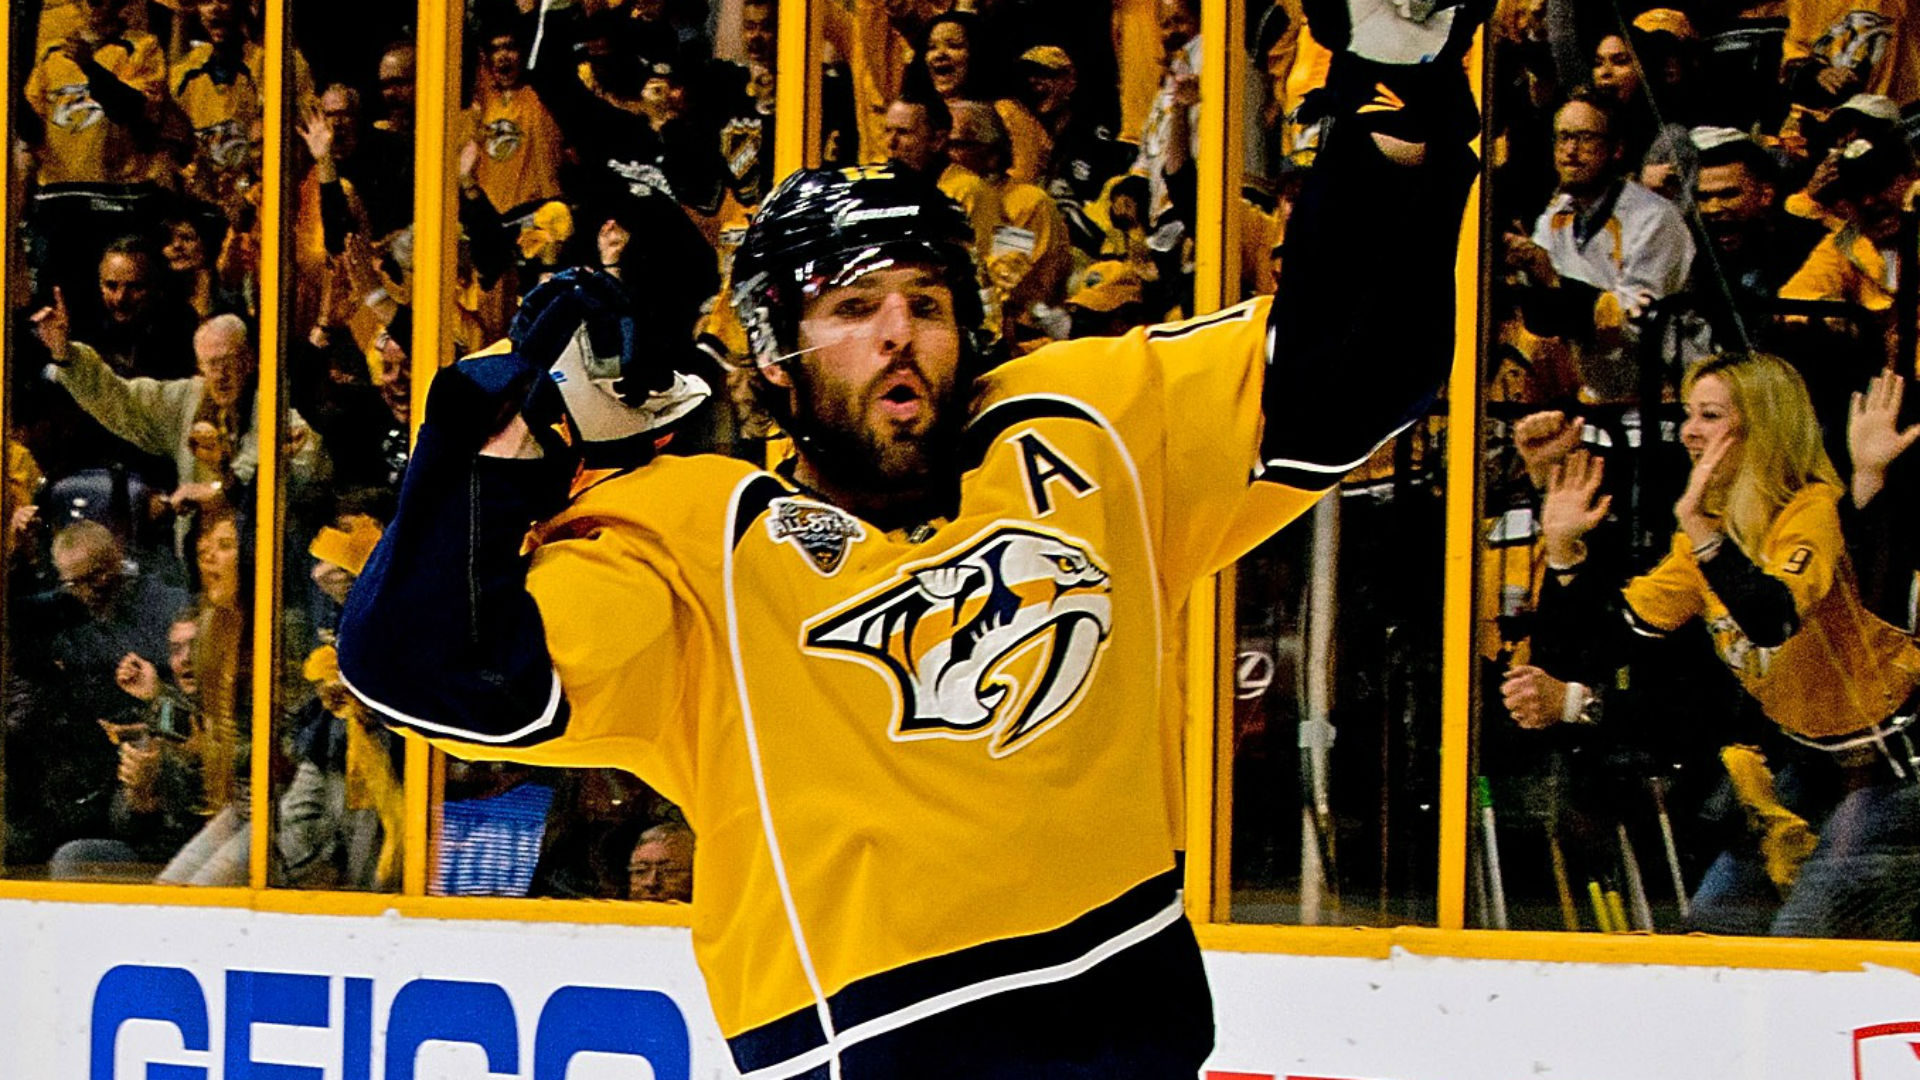 Mike-fisher-050616-getty-ftr-usjpg_1btxmr9q98ir11wl047rxsjx5u